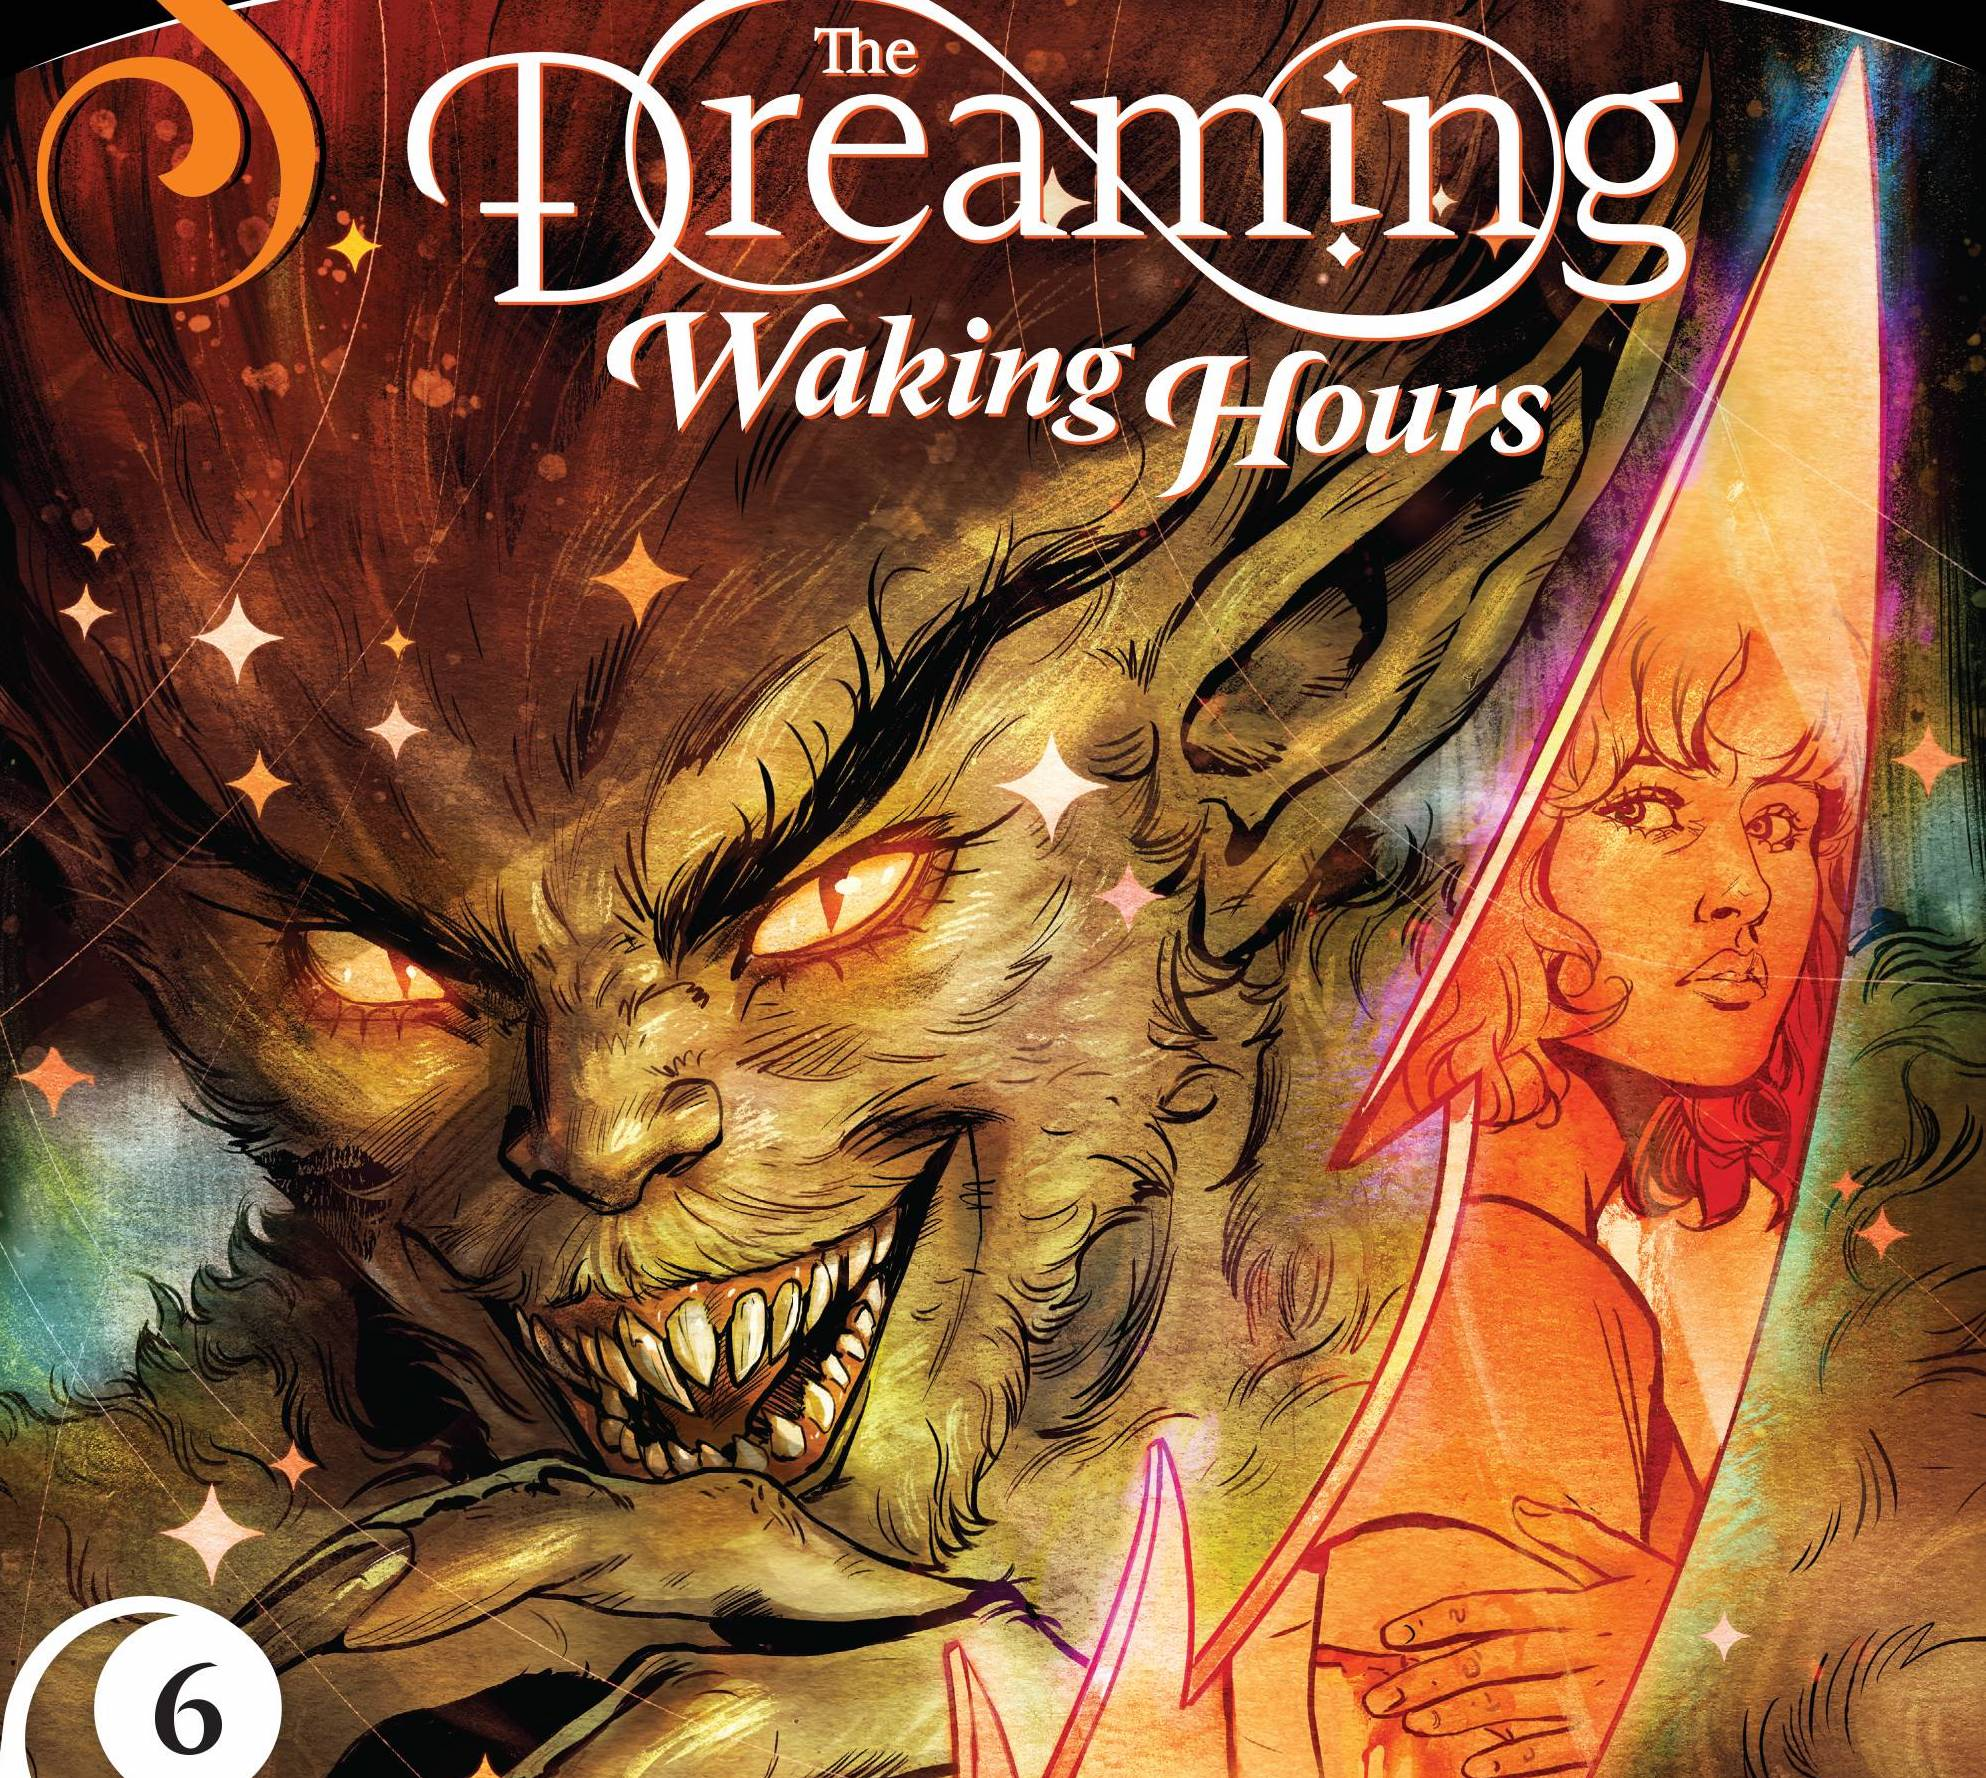 'The Dreaming: Waking Hours' #6 review